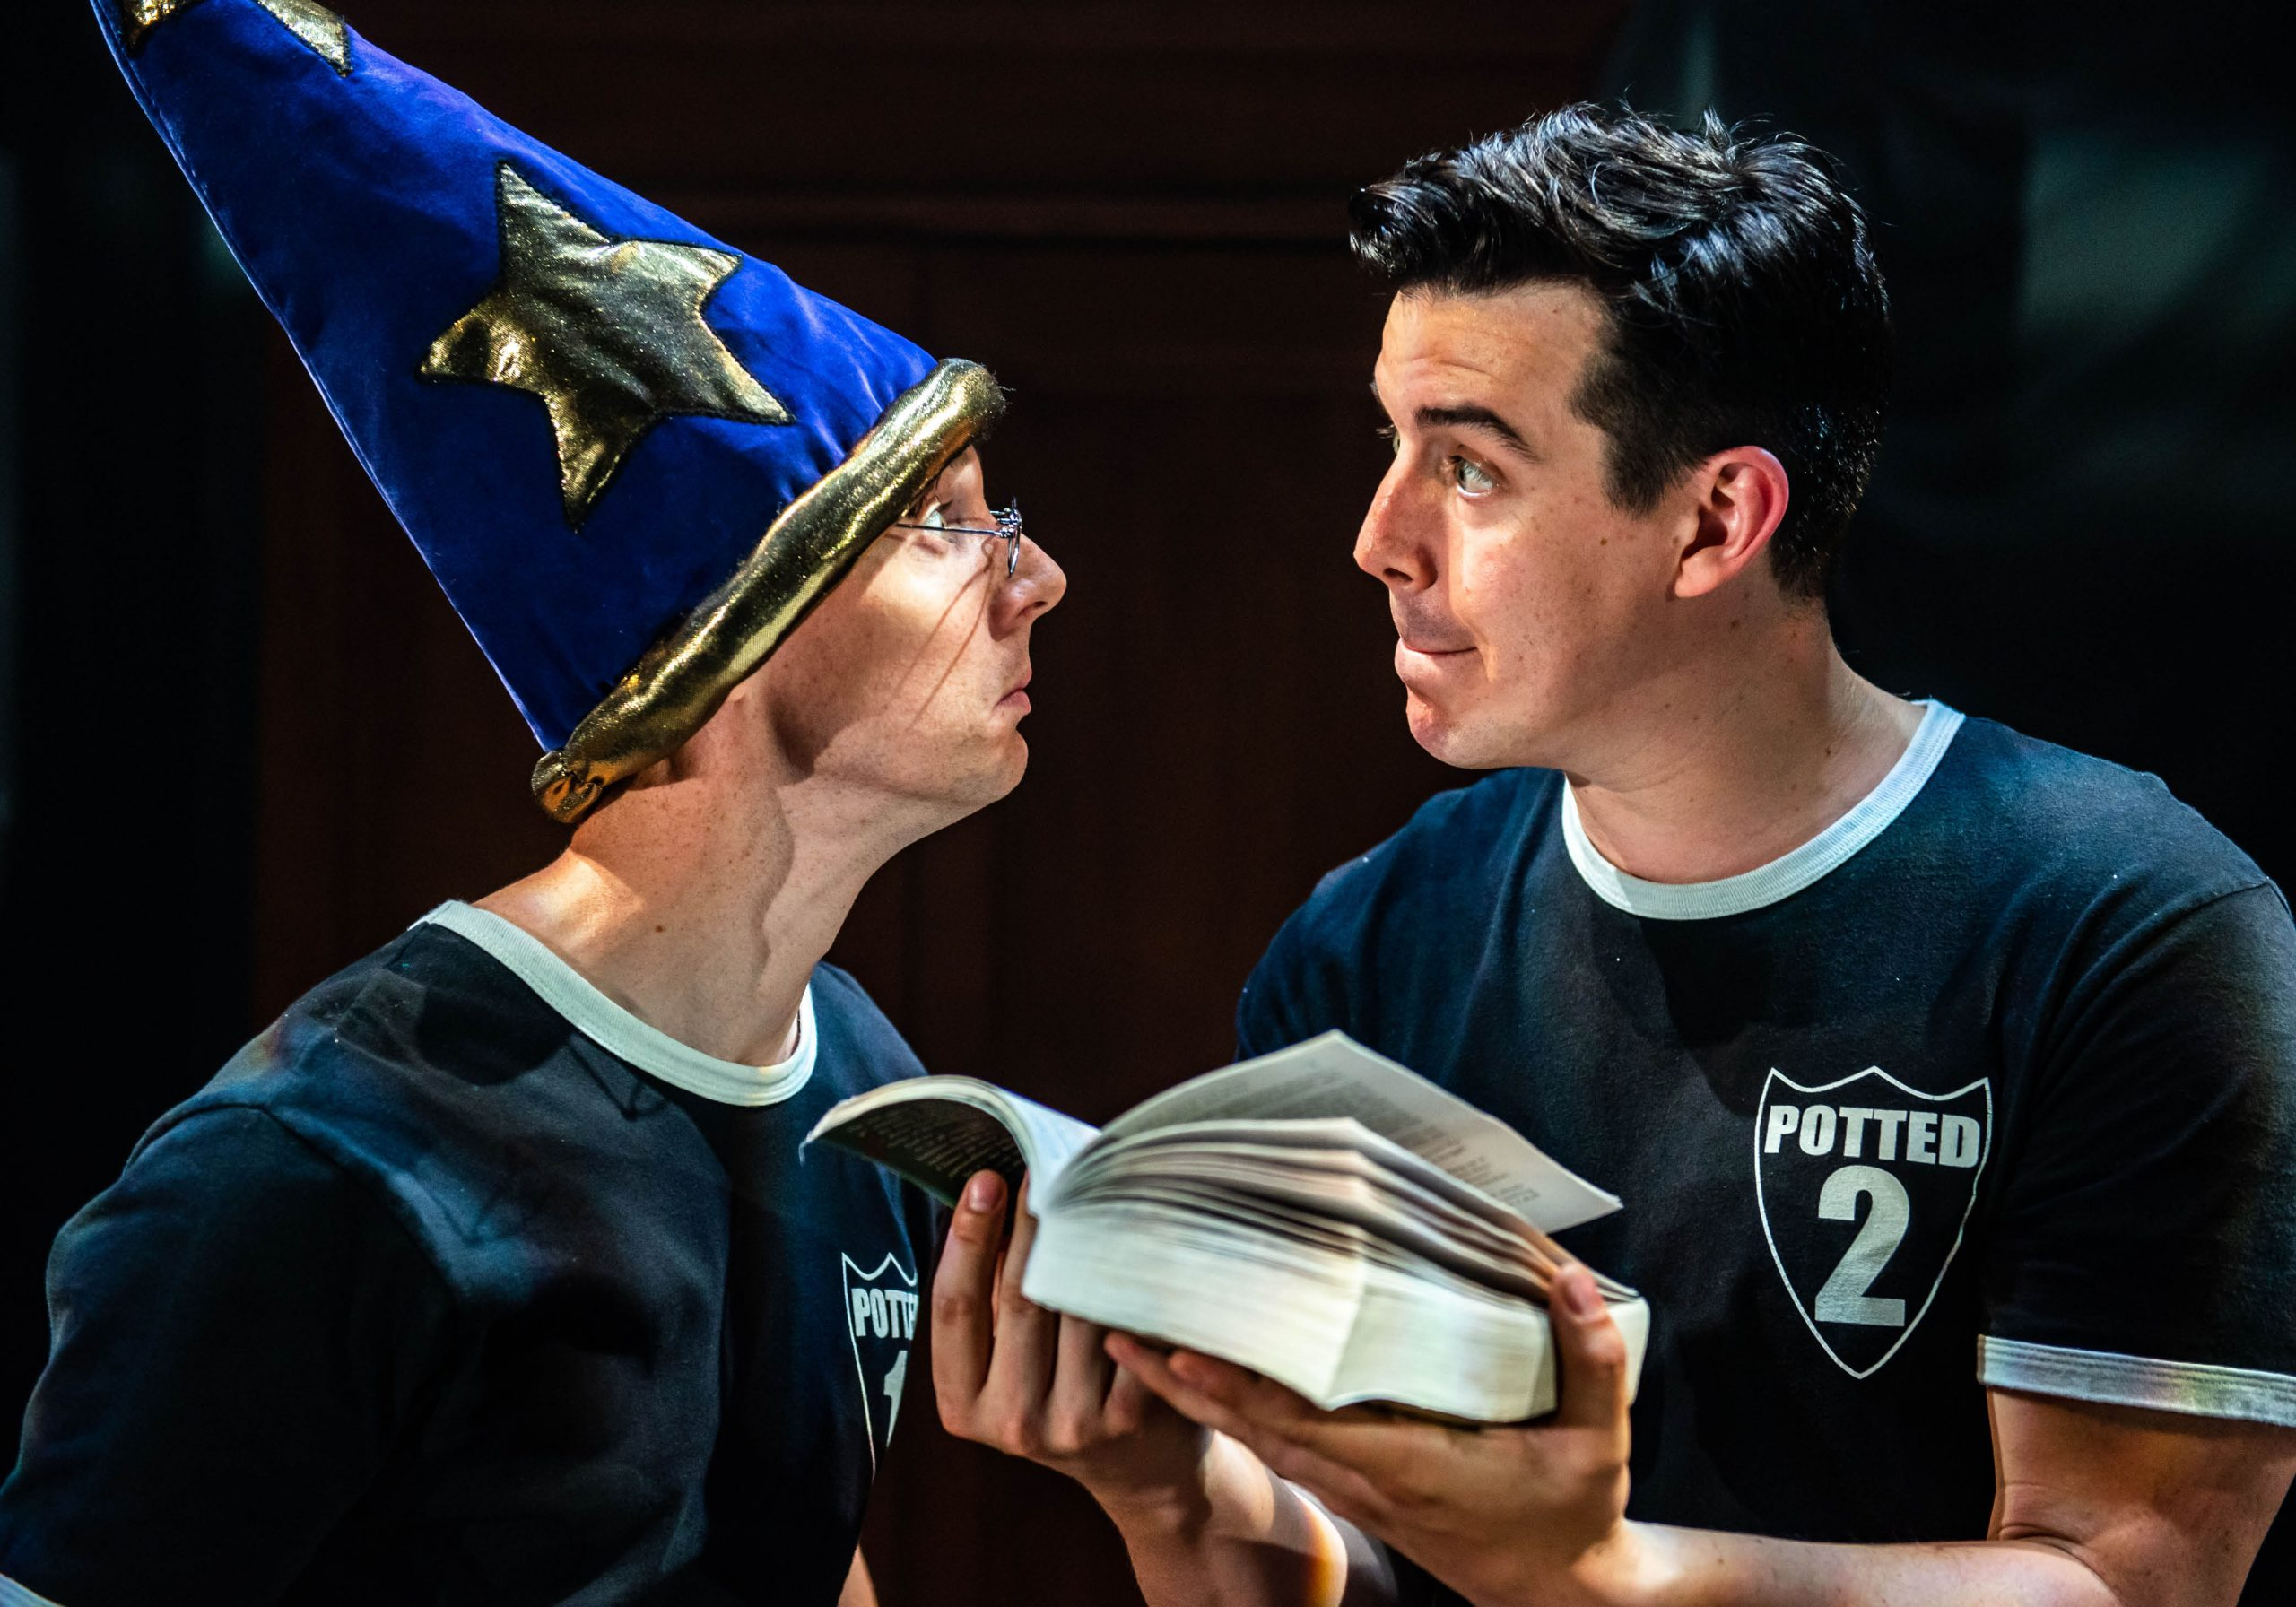 Potted Potter Show Image